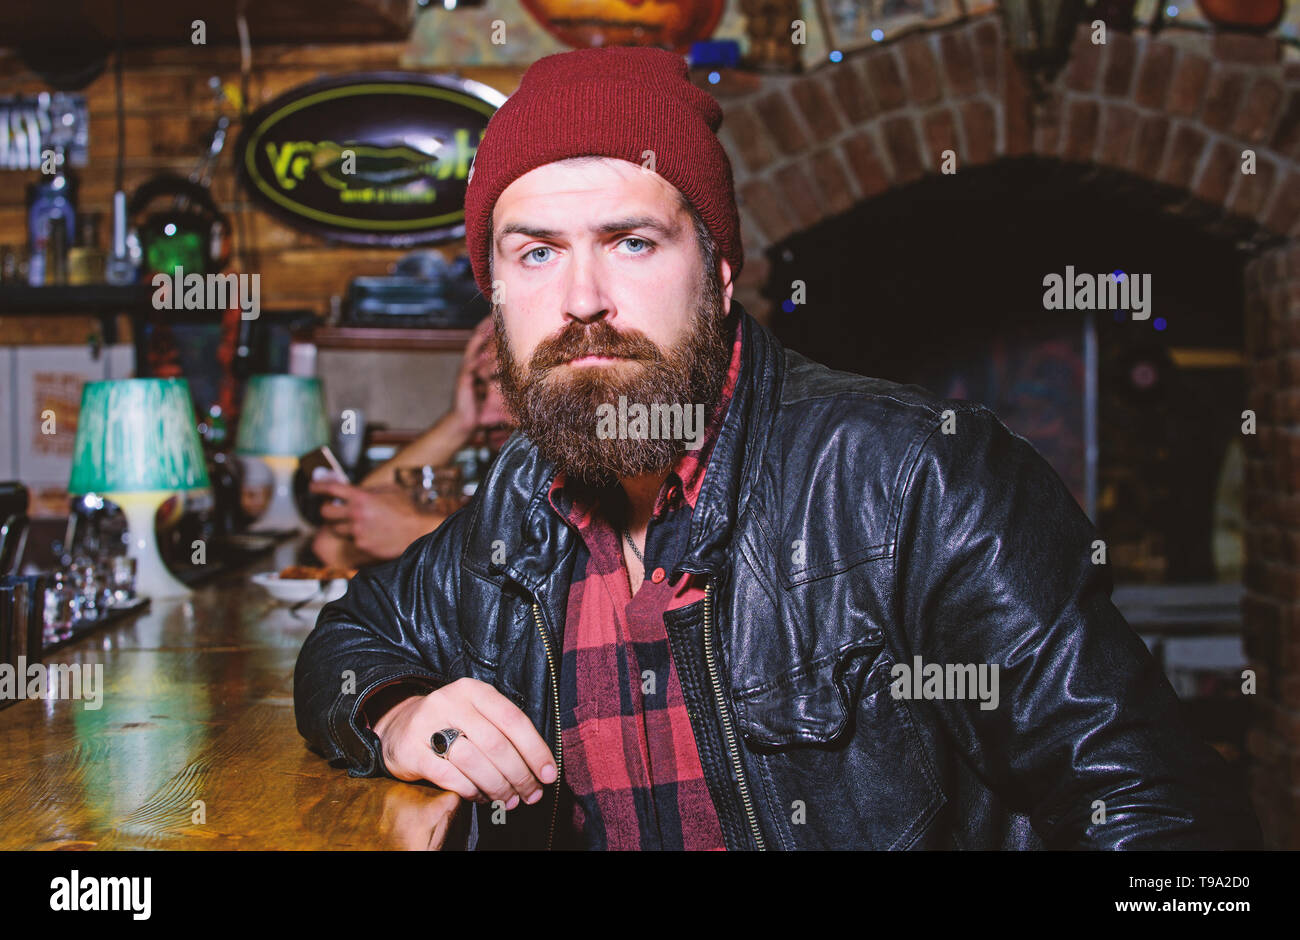 Friday evening. Hipster relaxing at bar. Bar is relaxing place to have drink and relax. Man with beard spend leisure in dark bar. Brutal lonely hipster. Brutal hipster bearded man sit at bar counter. - Stock Image